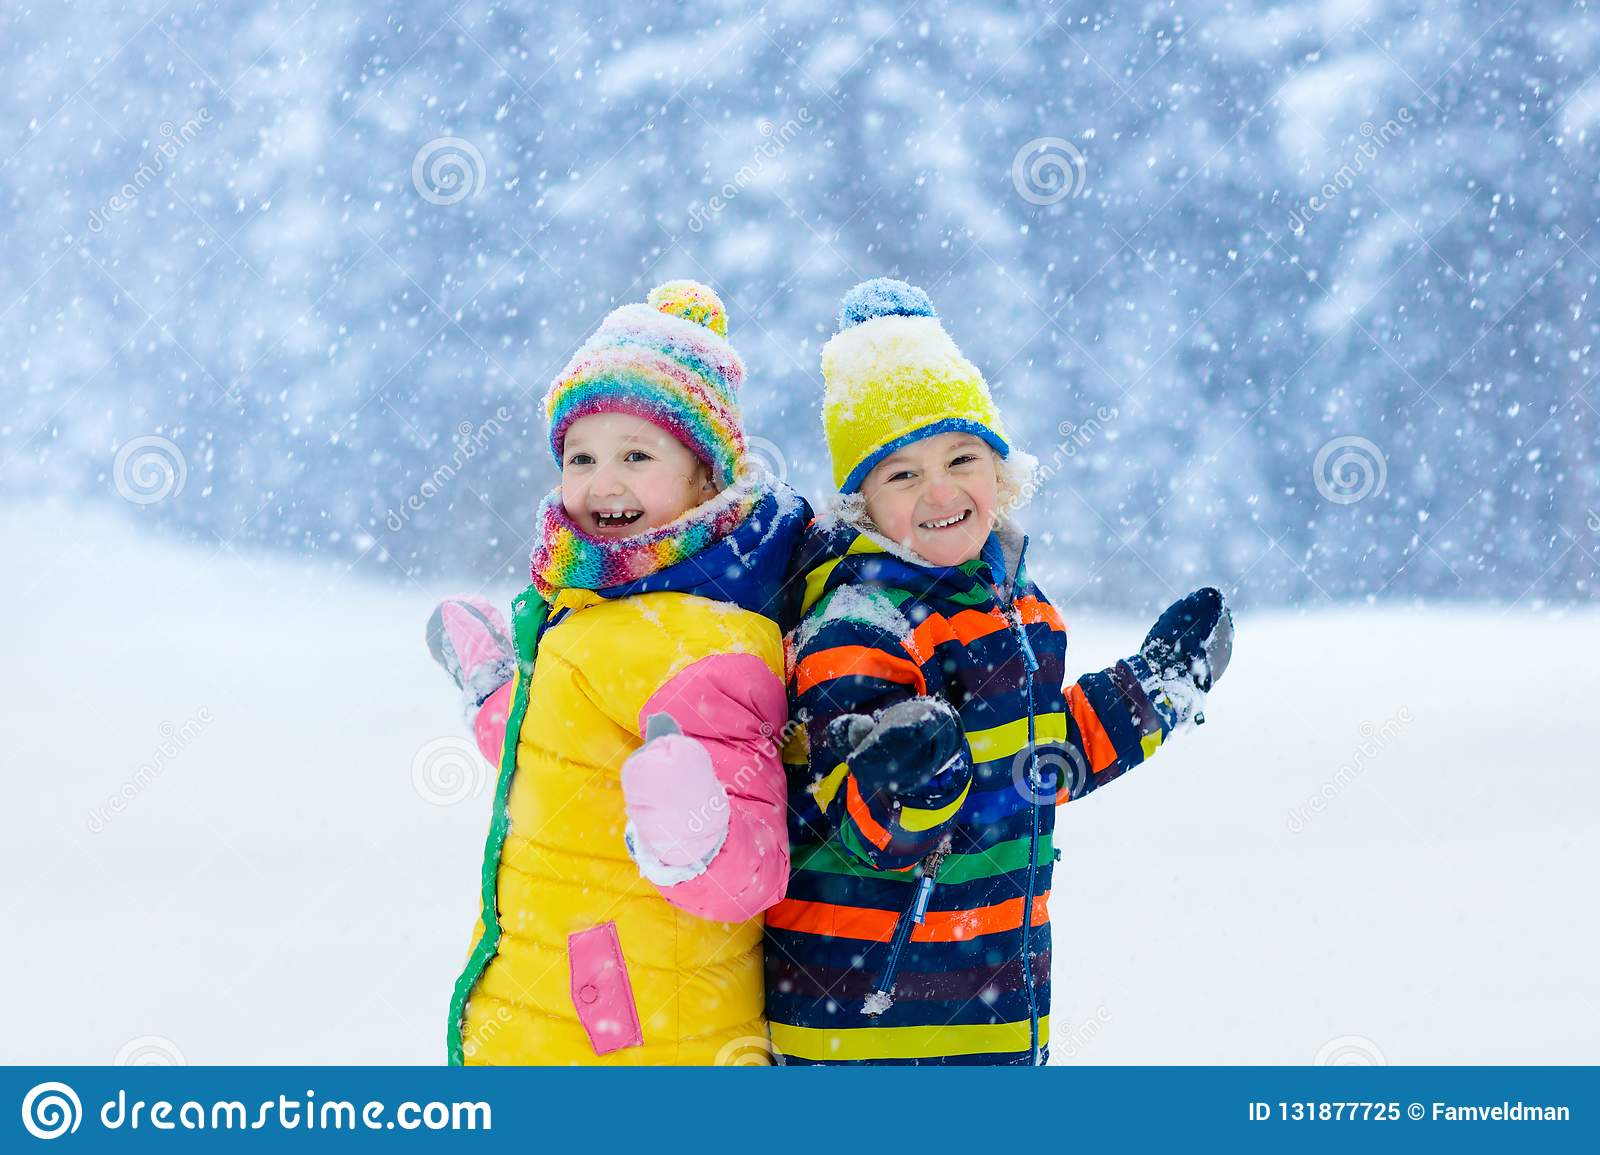 59bf5af09c79 Kids Playing In Snow. Children Play In Winter Stock Image - Image of ...